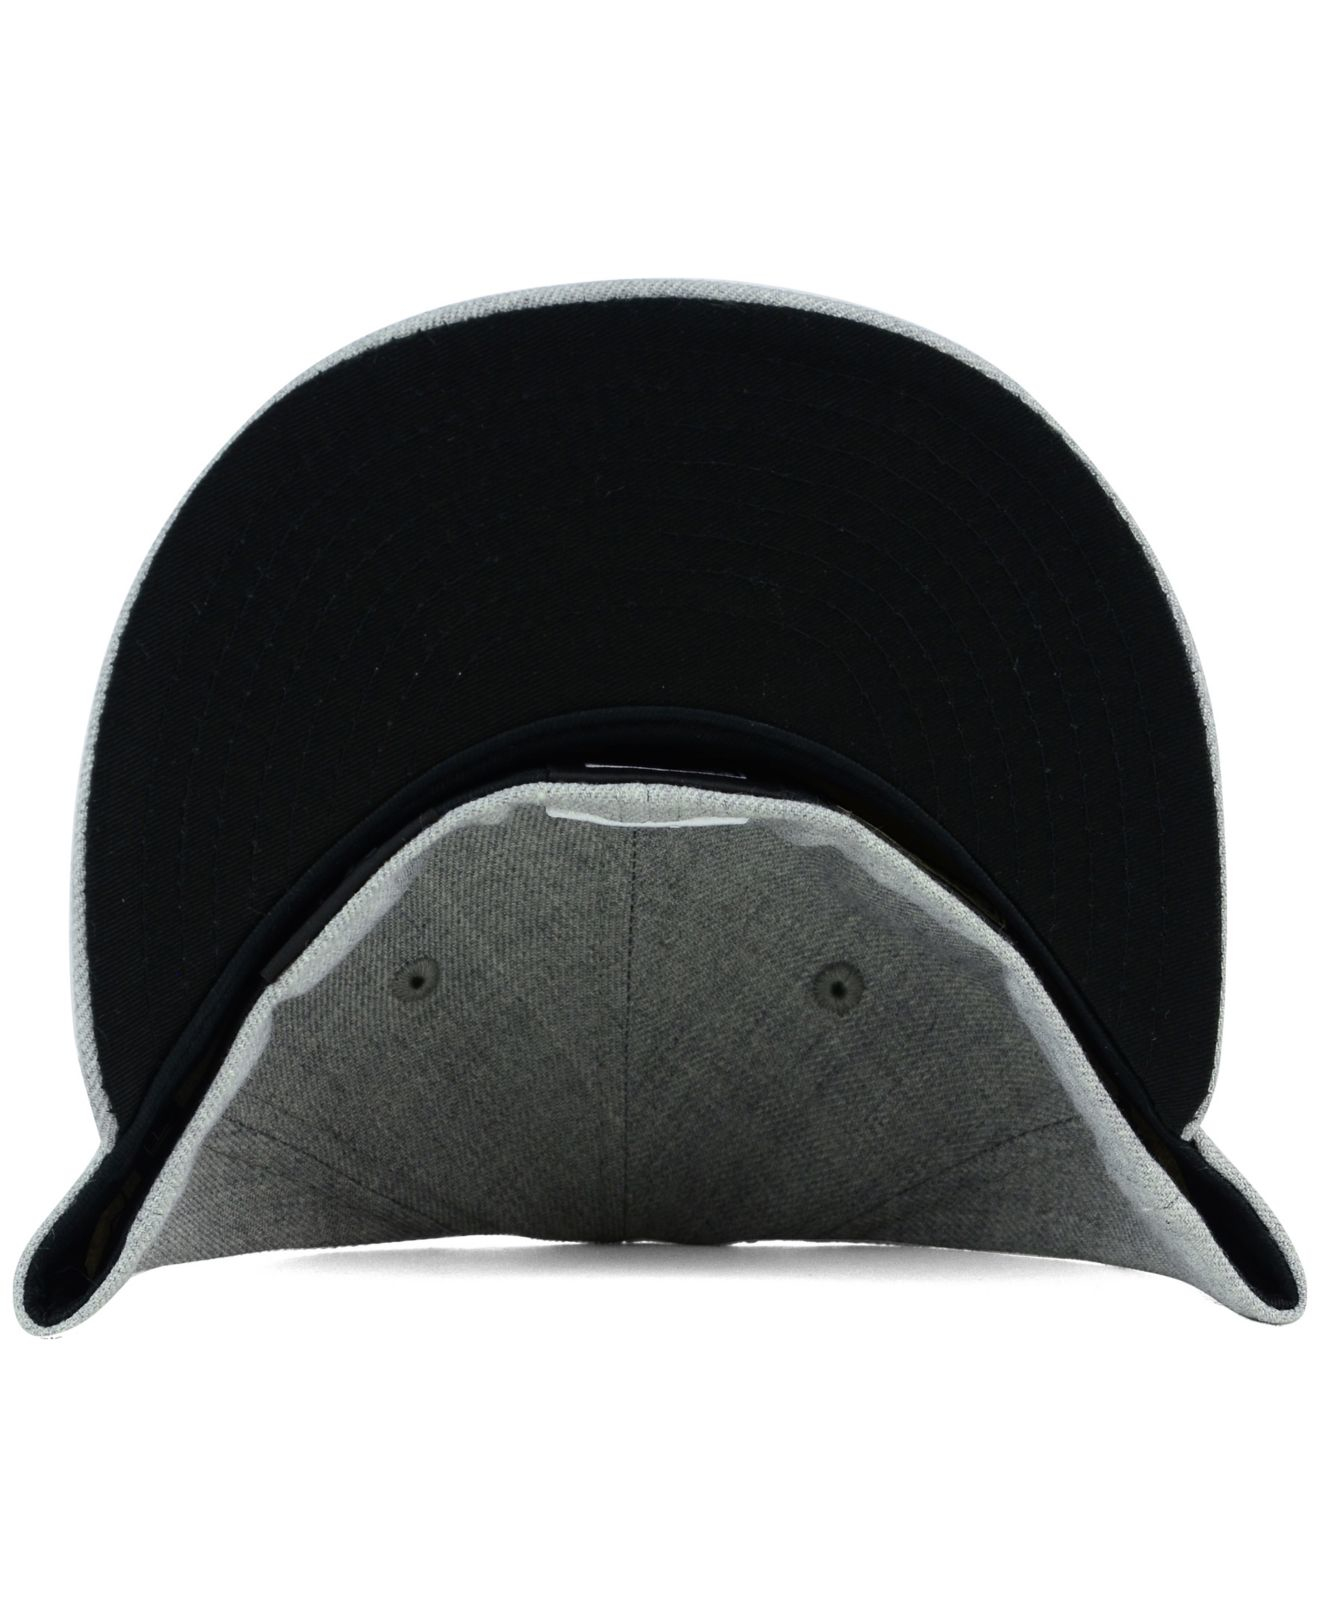 finest selection e5e27 fc36f Lyst - Ktz Atlanta Hawks Heather Black White 59fifty Cap in Gray for Men